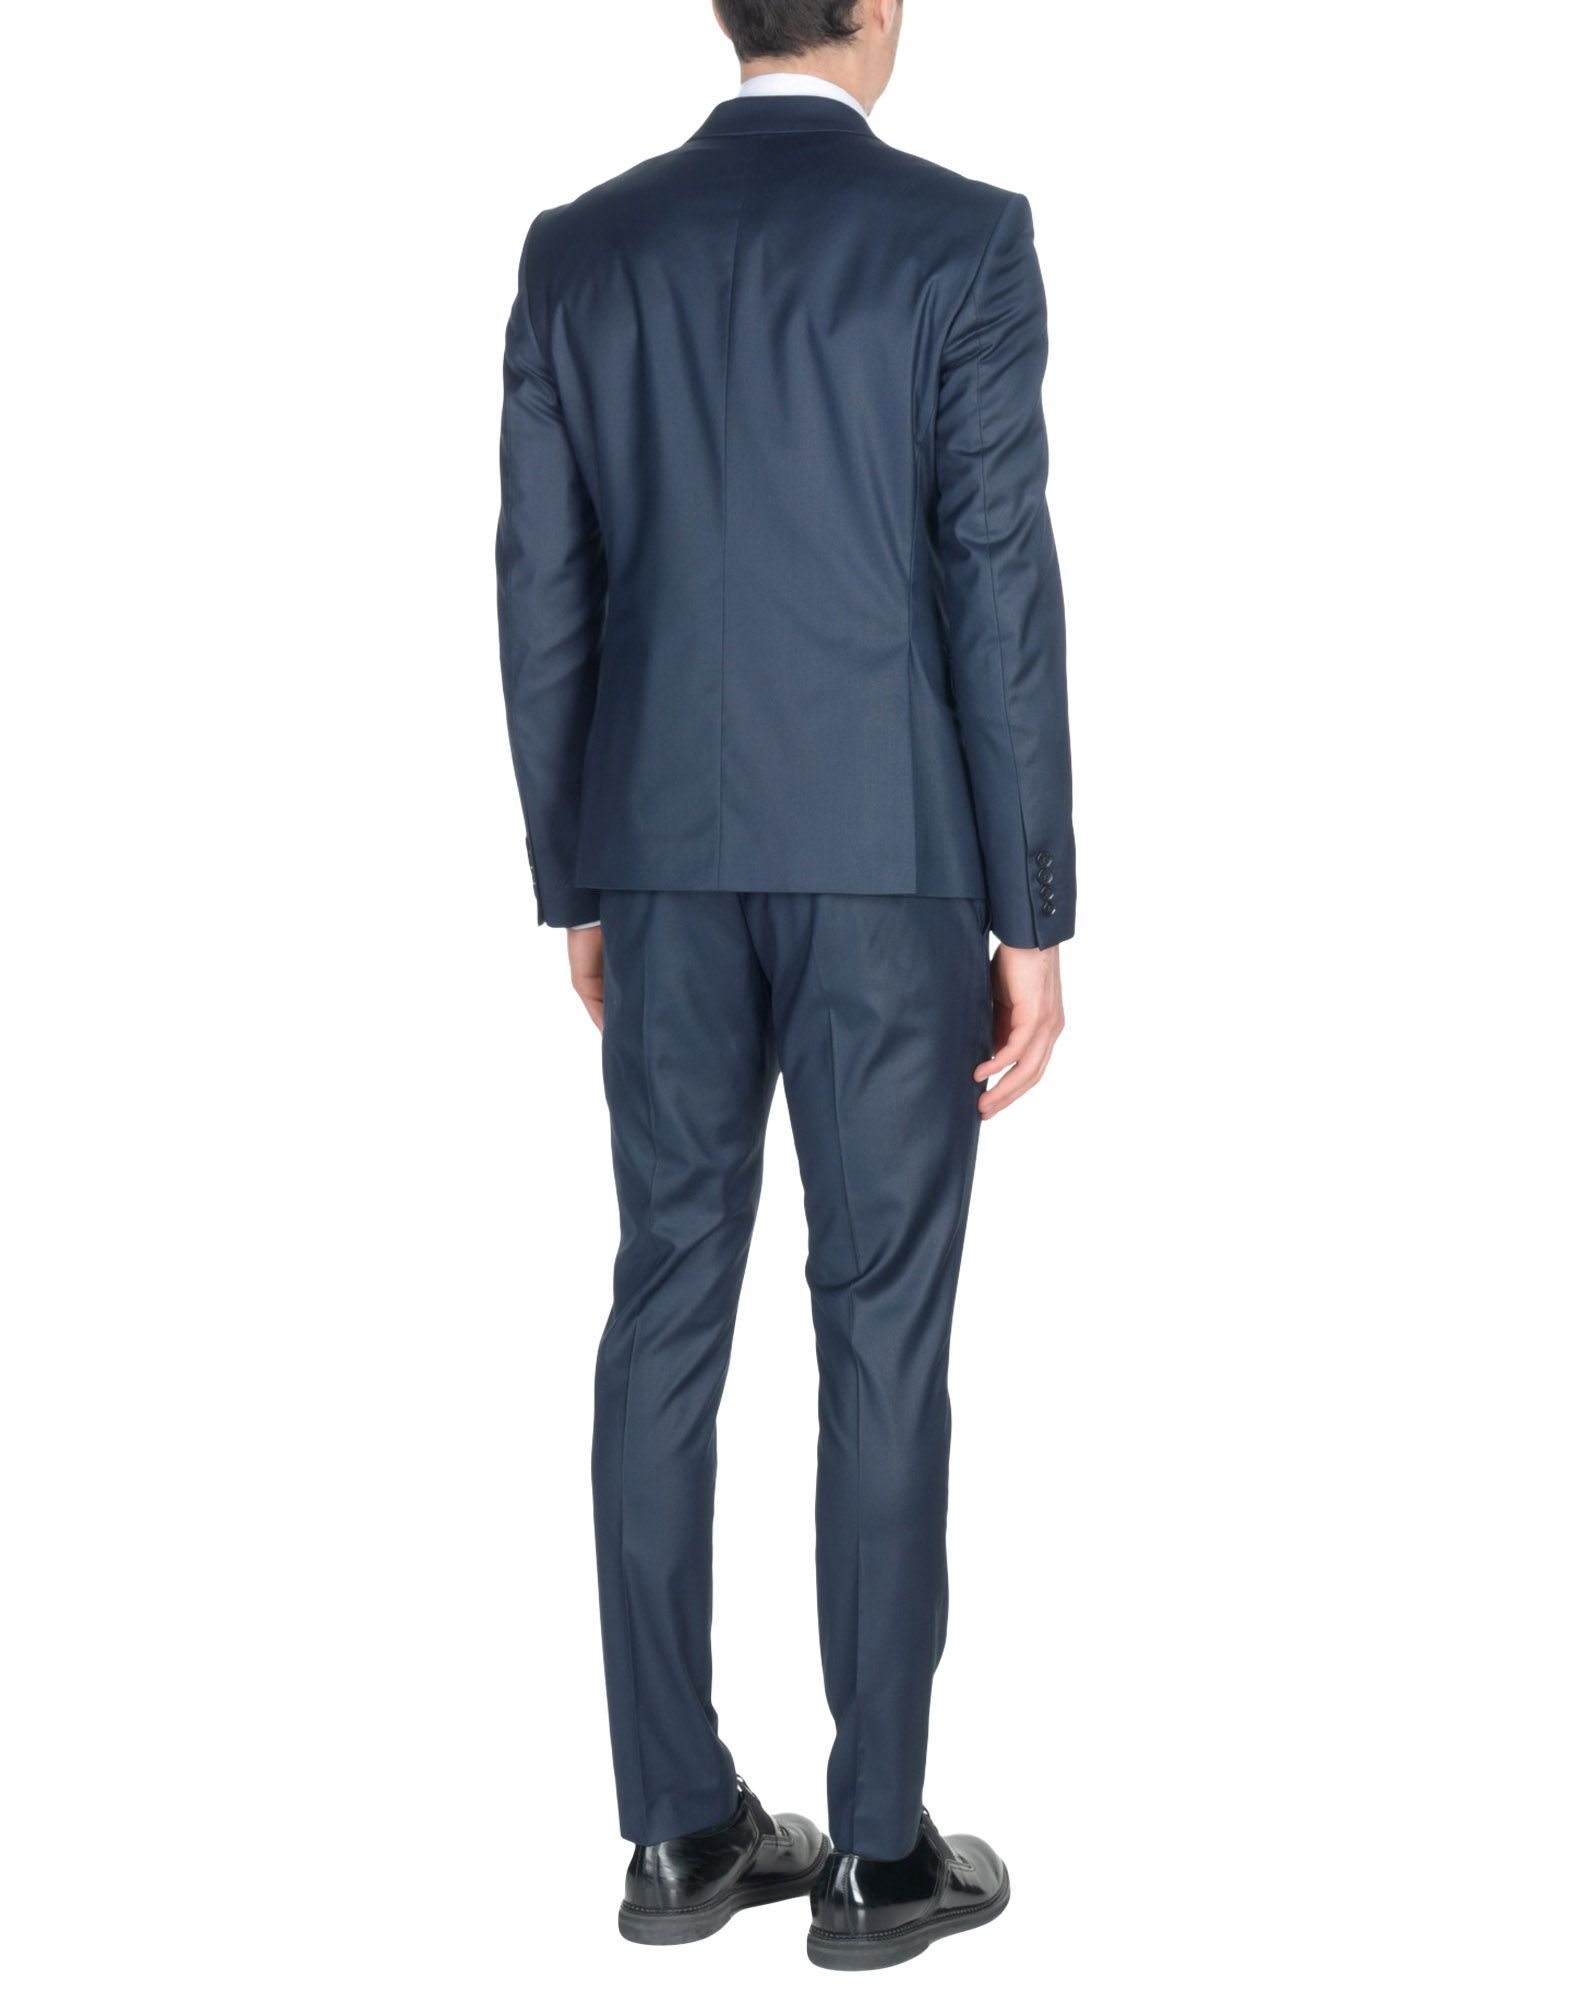 Selected Homme Dark Blue Single Breasted Suit